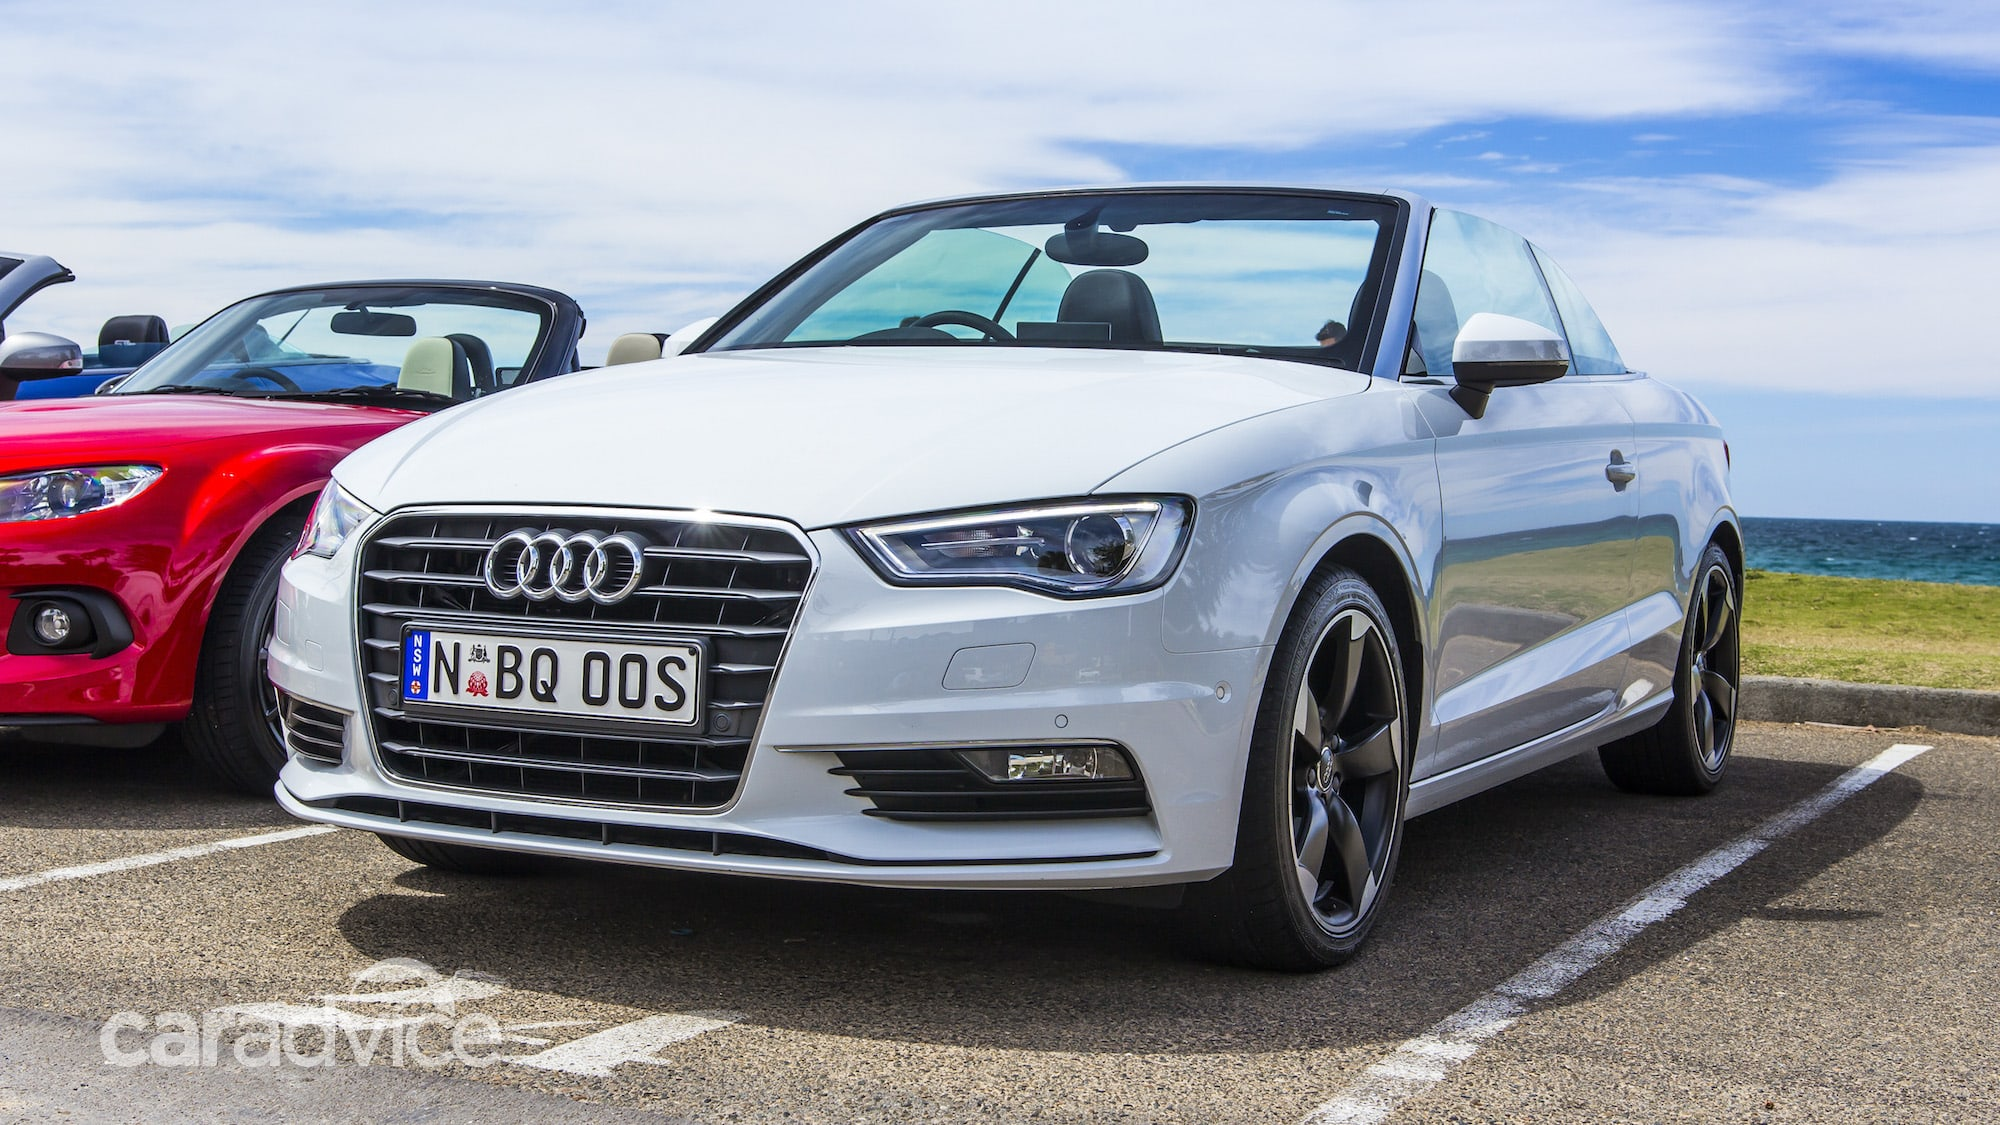 Audi A3 Cabriolet Review : 2.0 TDI Ambition | CarAdvice